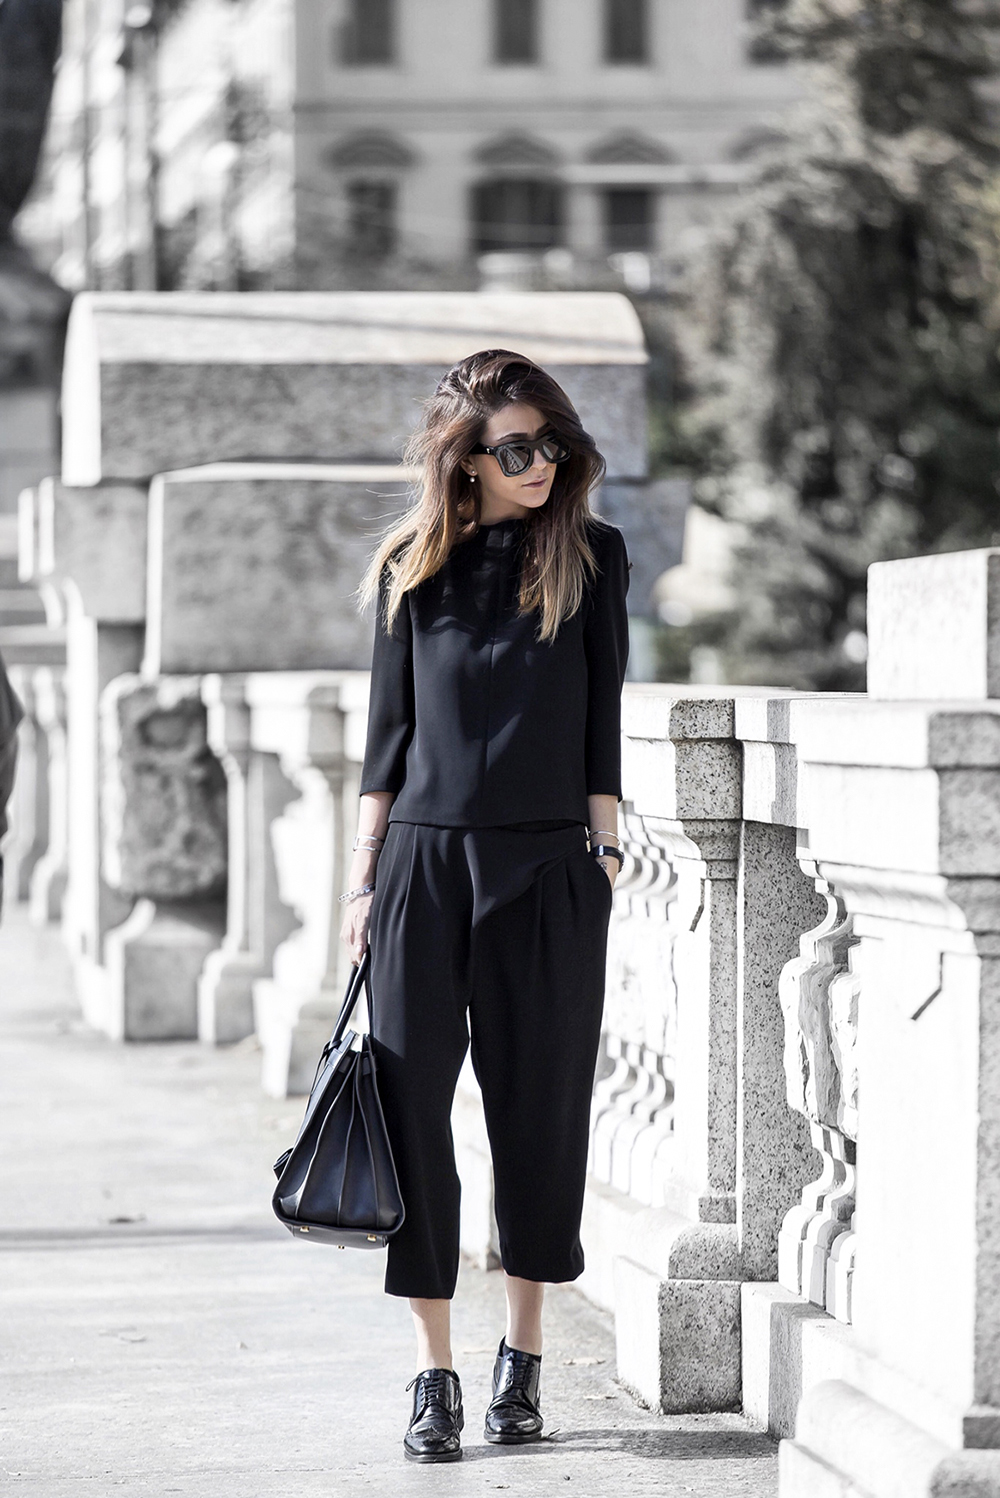 Nicoletta Reggio rocks the all black trend in cropped trousers and a pair of black brogues. Shirt/Trousers: Balenciaga, Shoes: Sarenza.it.